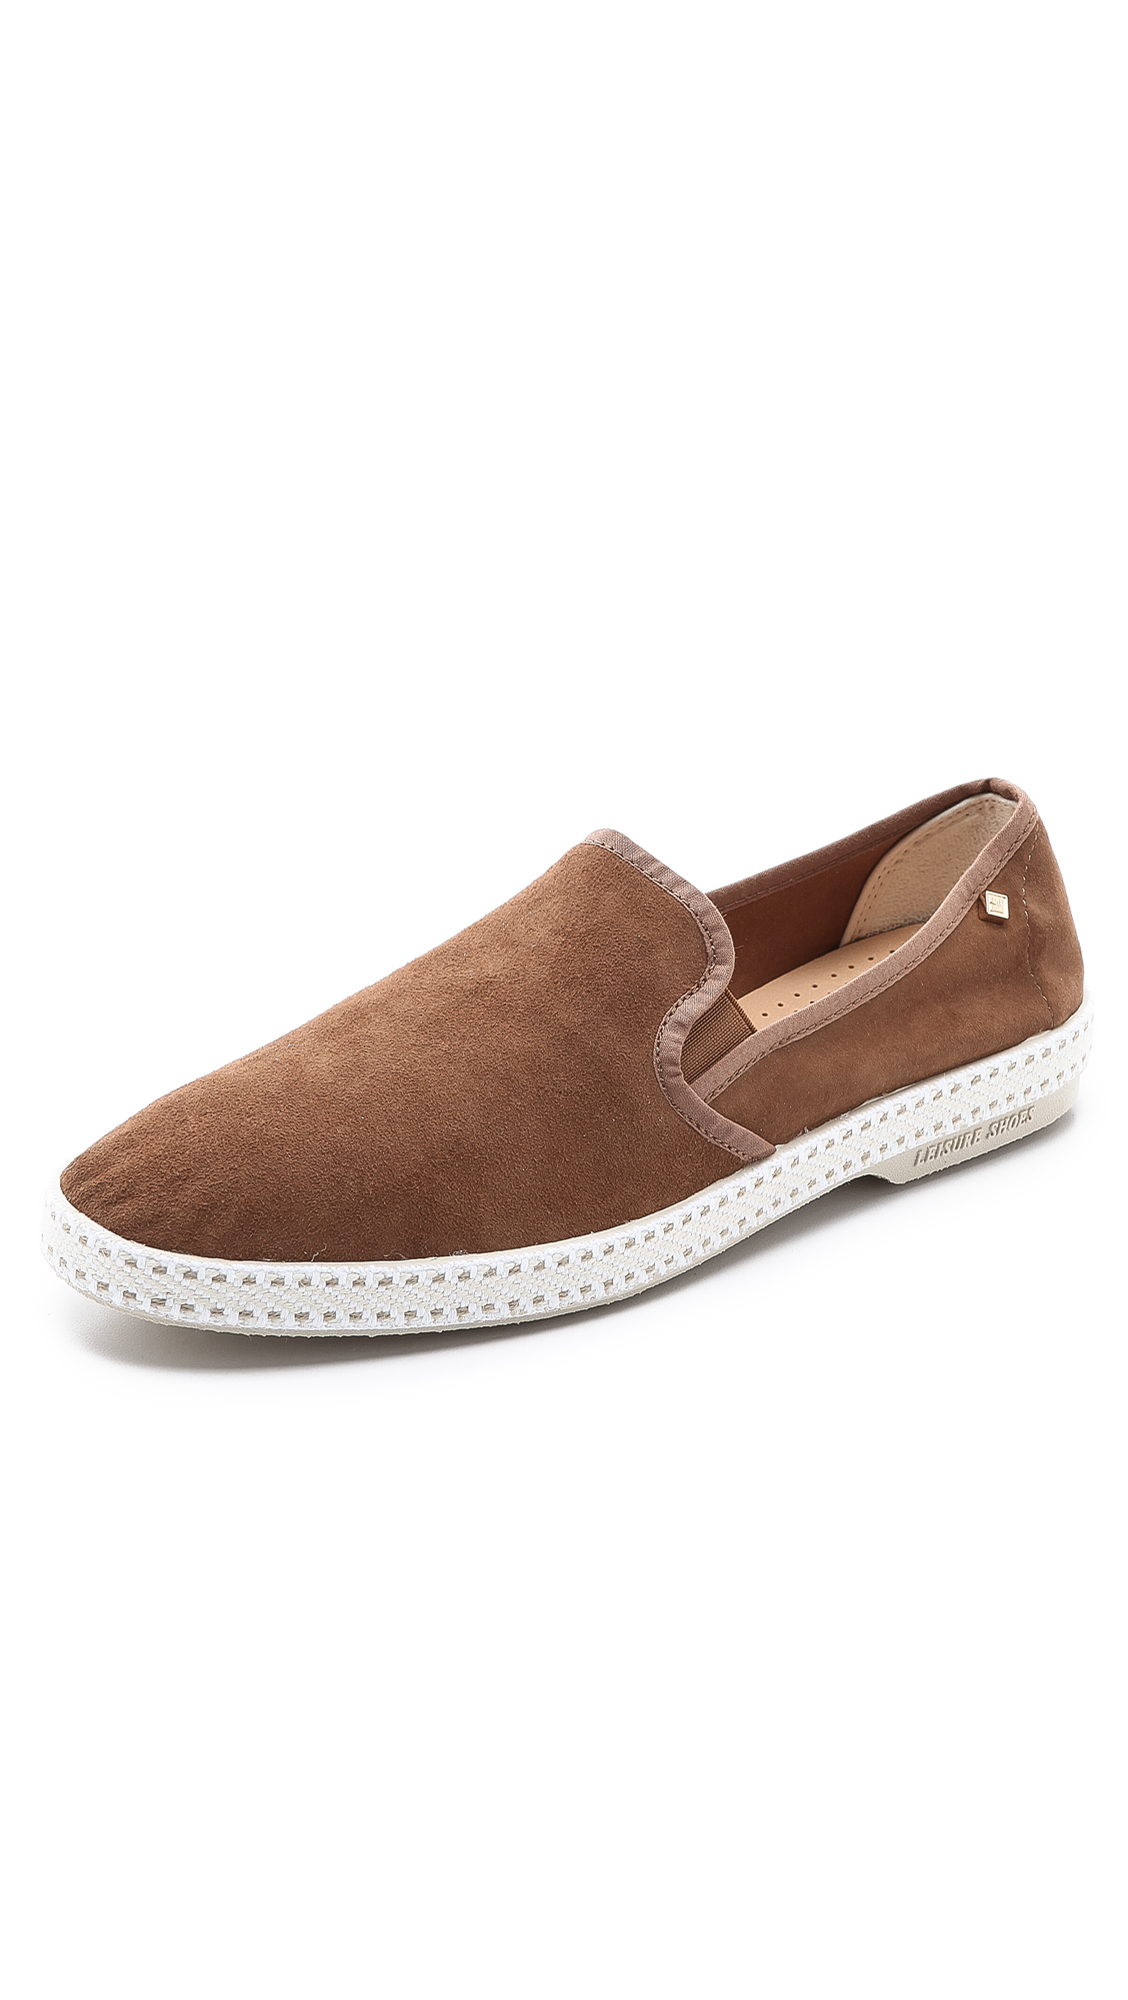 rivieras suede sultan slip on shoes in brown for lyst